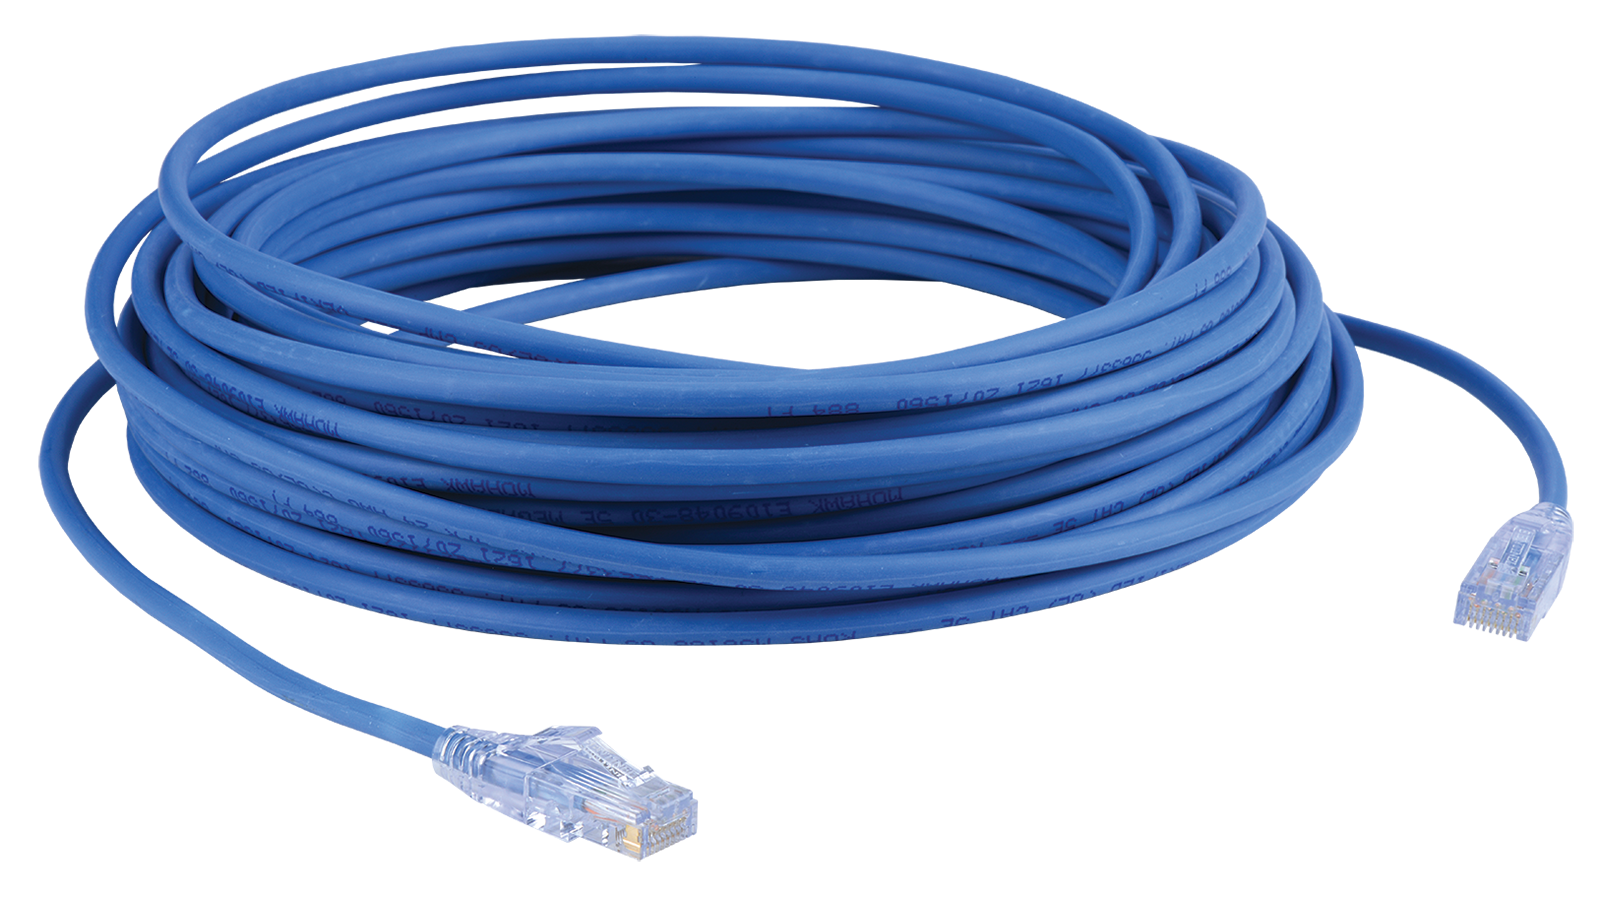 Cat 5 cable png. Structured cabling category network